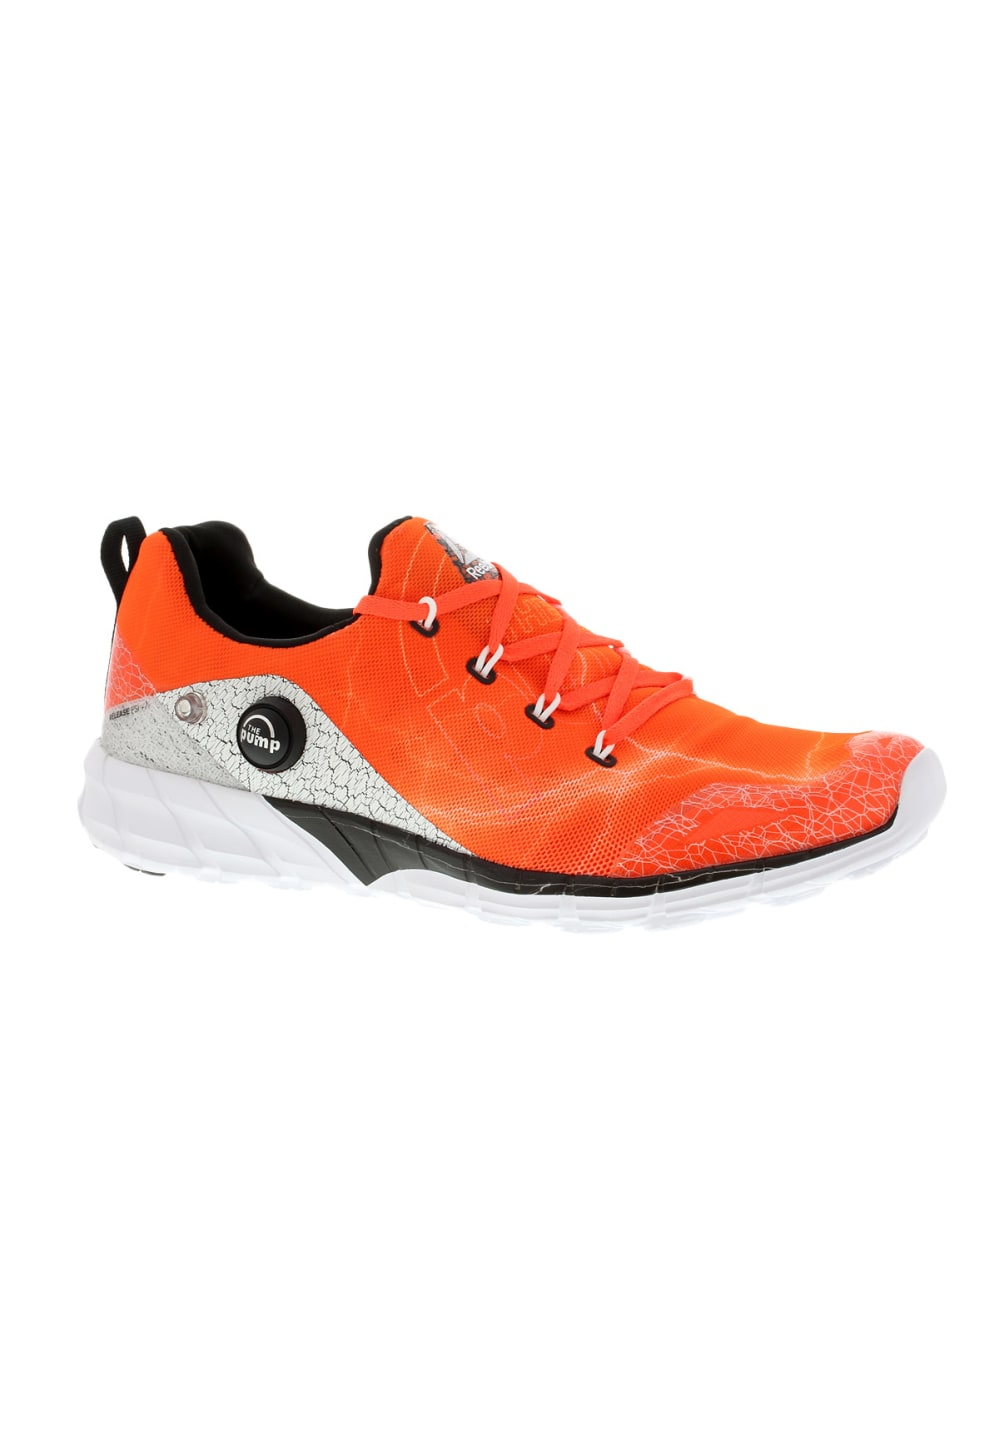 1241f3dbe8bb Next. -50%. This product is currently out of stock. Reebok. ZPump Fusion  2.0 Spdr - Running shoes ...